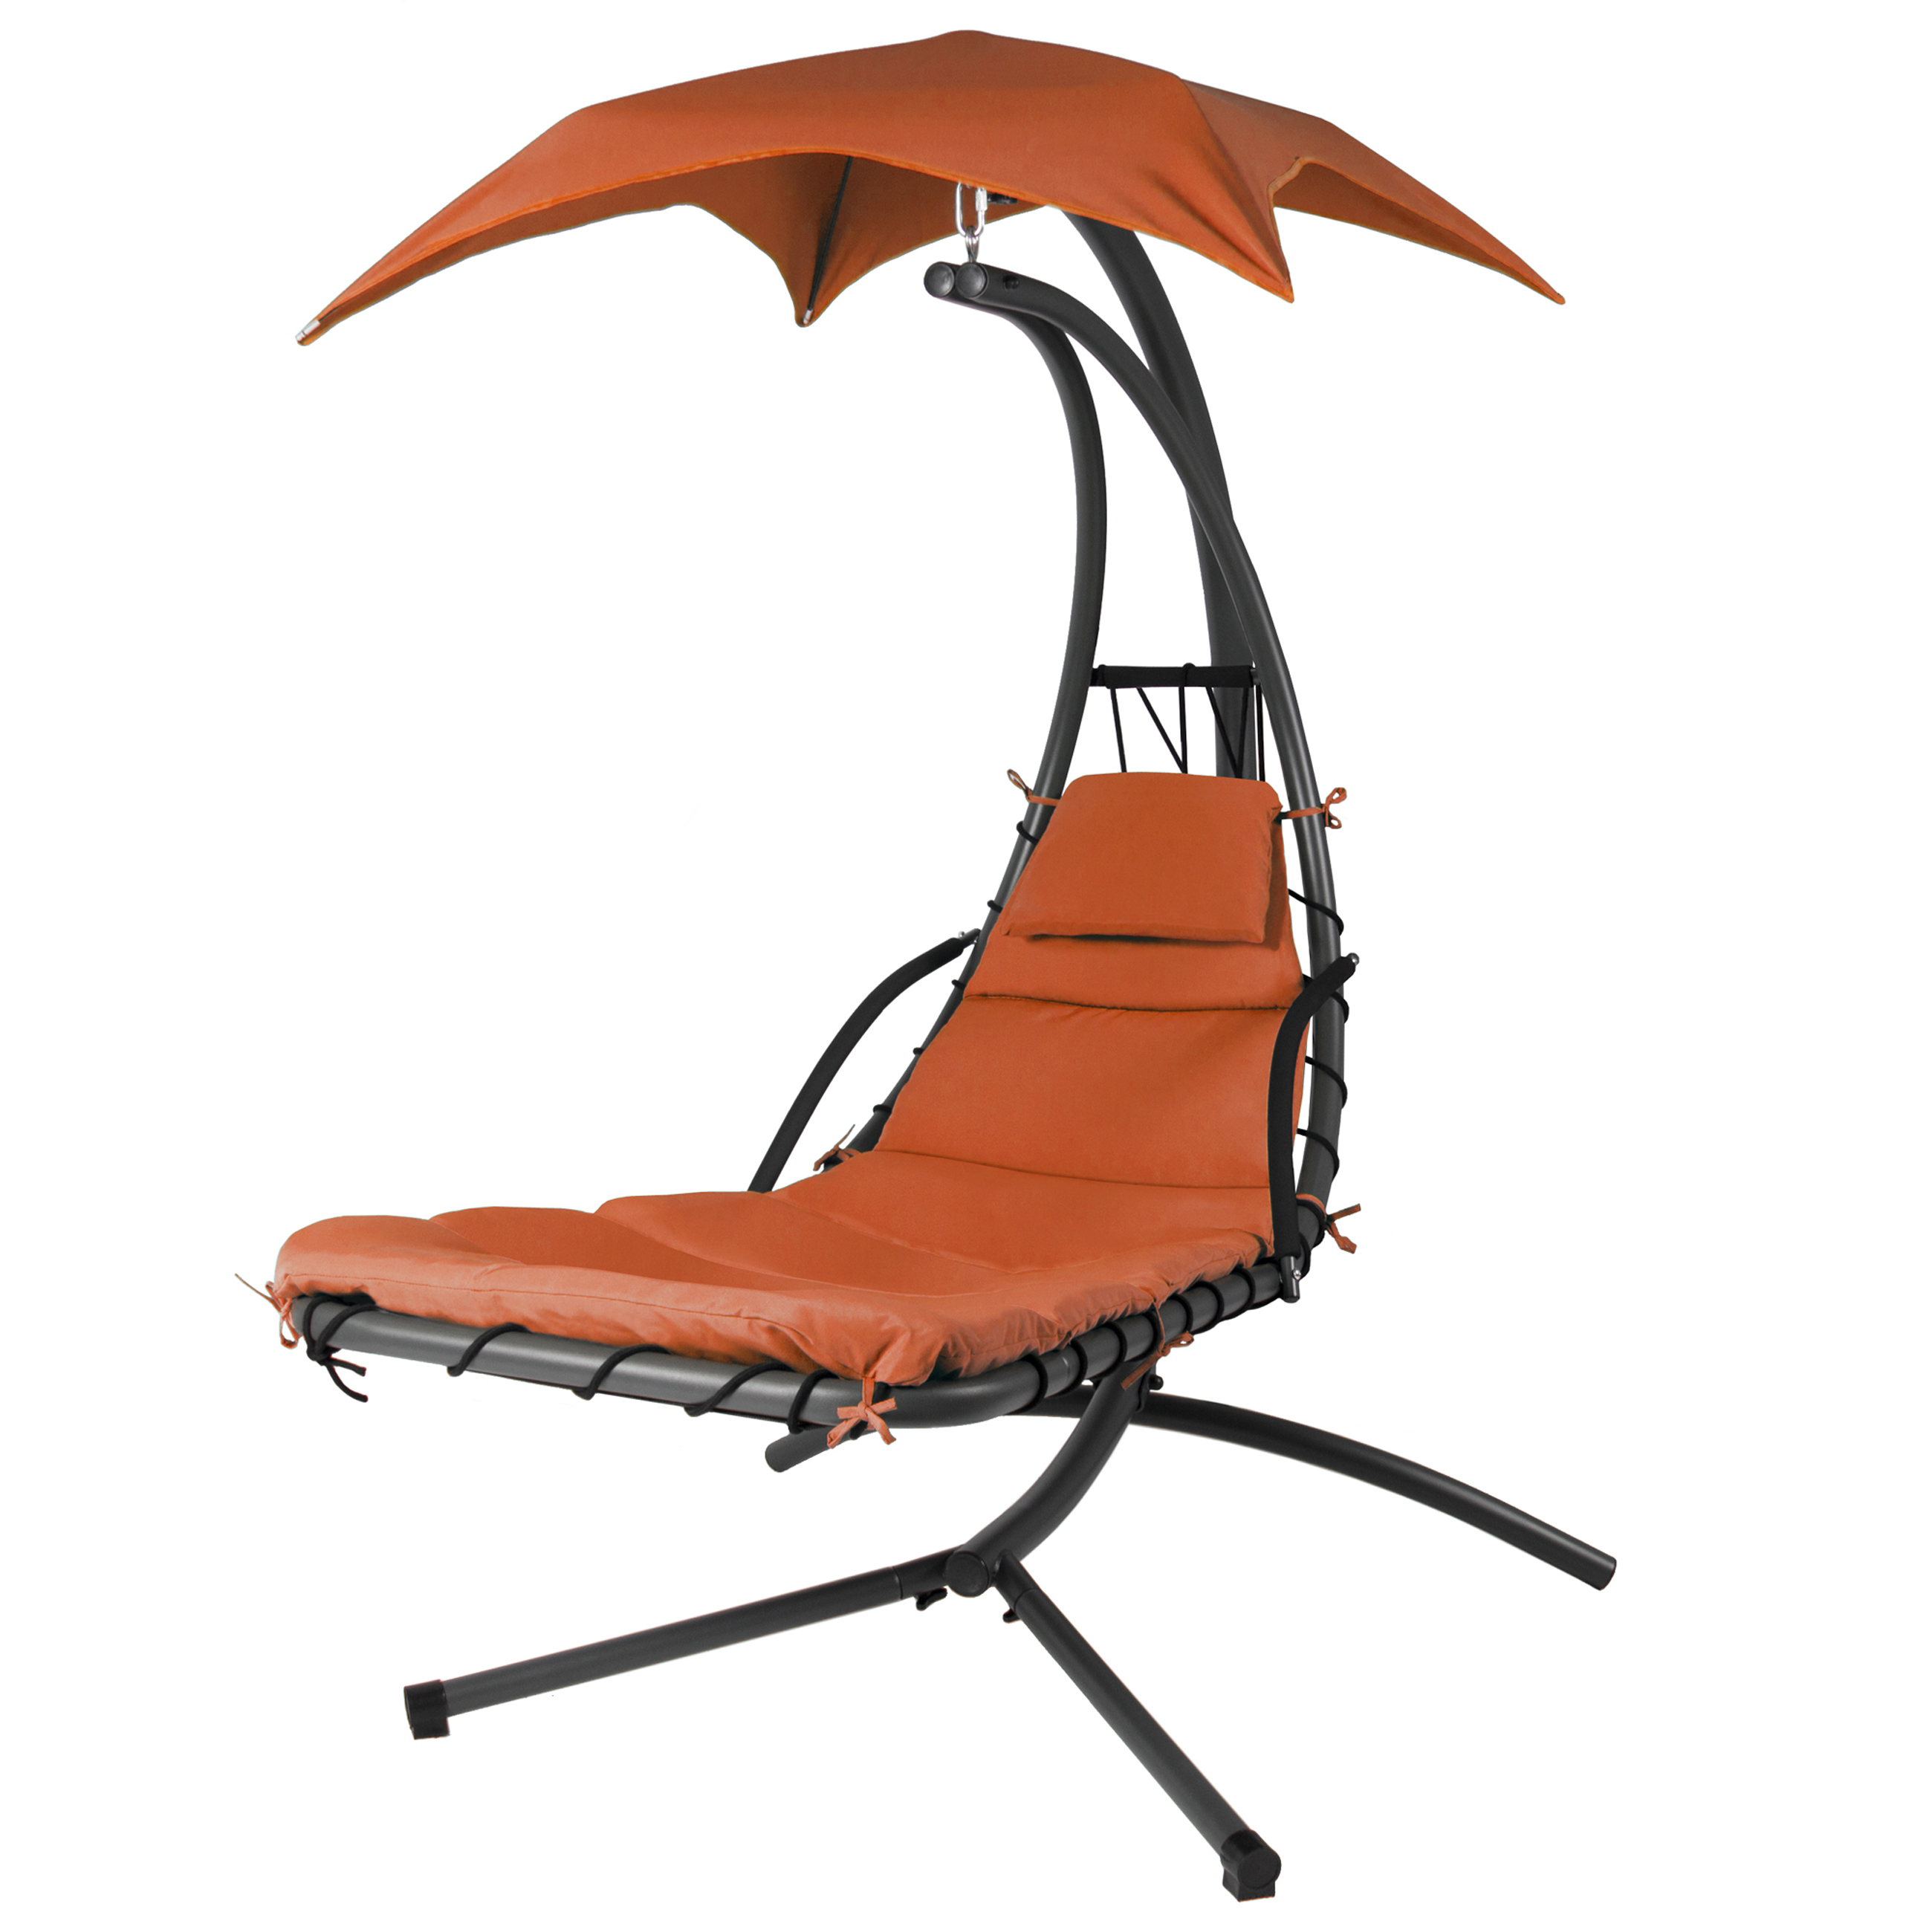 hanging chaise lounger chair skylrg